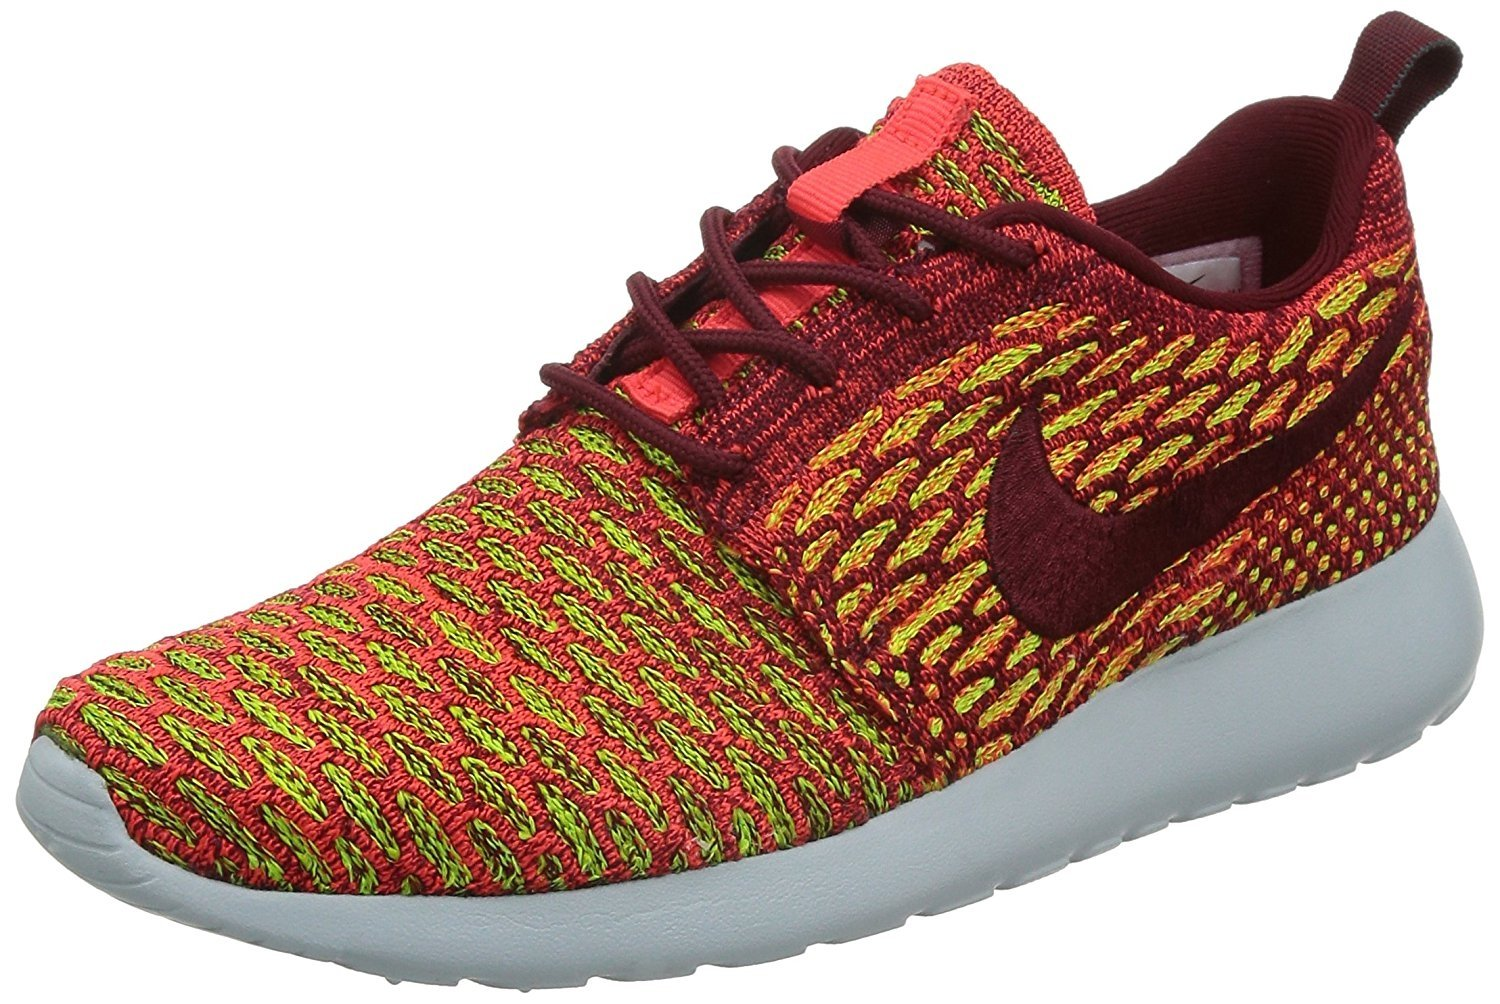 ddcad1771b37 Details about Nike Women s Roshe One Flyknit Running Shoe